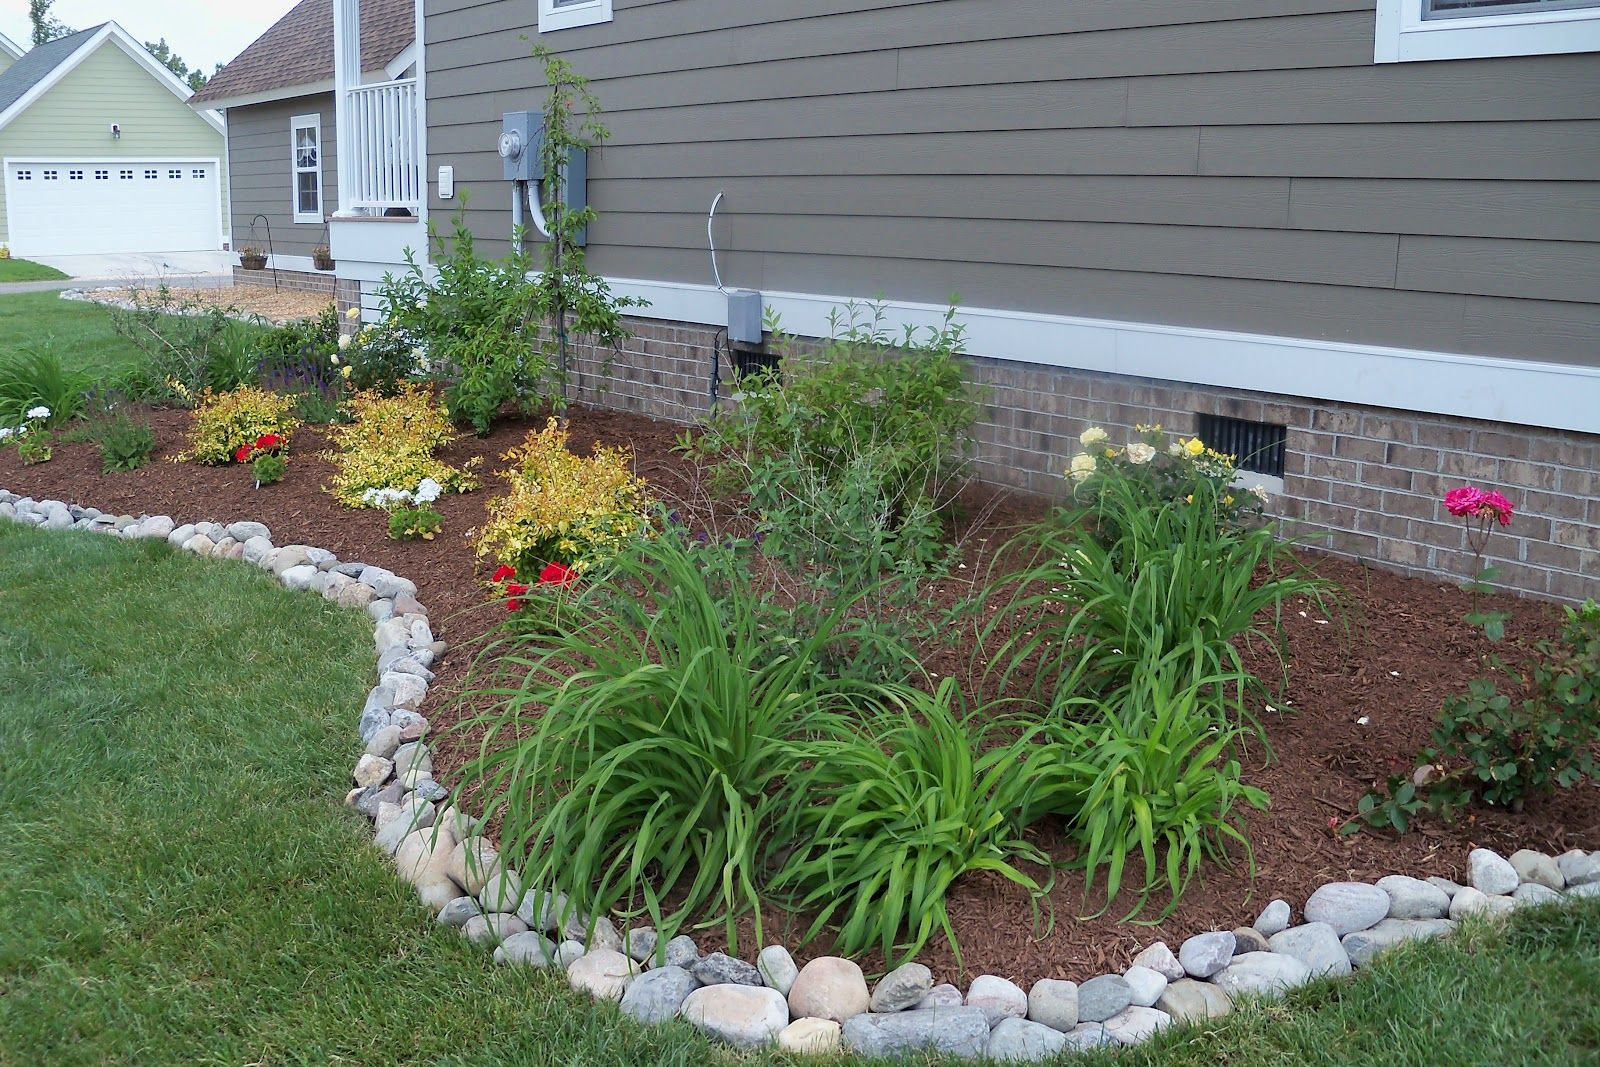 Captivating Landscaping+Stones | Mix And Match Stone Shapes And Colors For A Natural  Edge. Positioned .